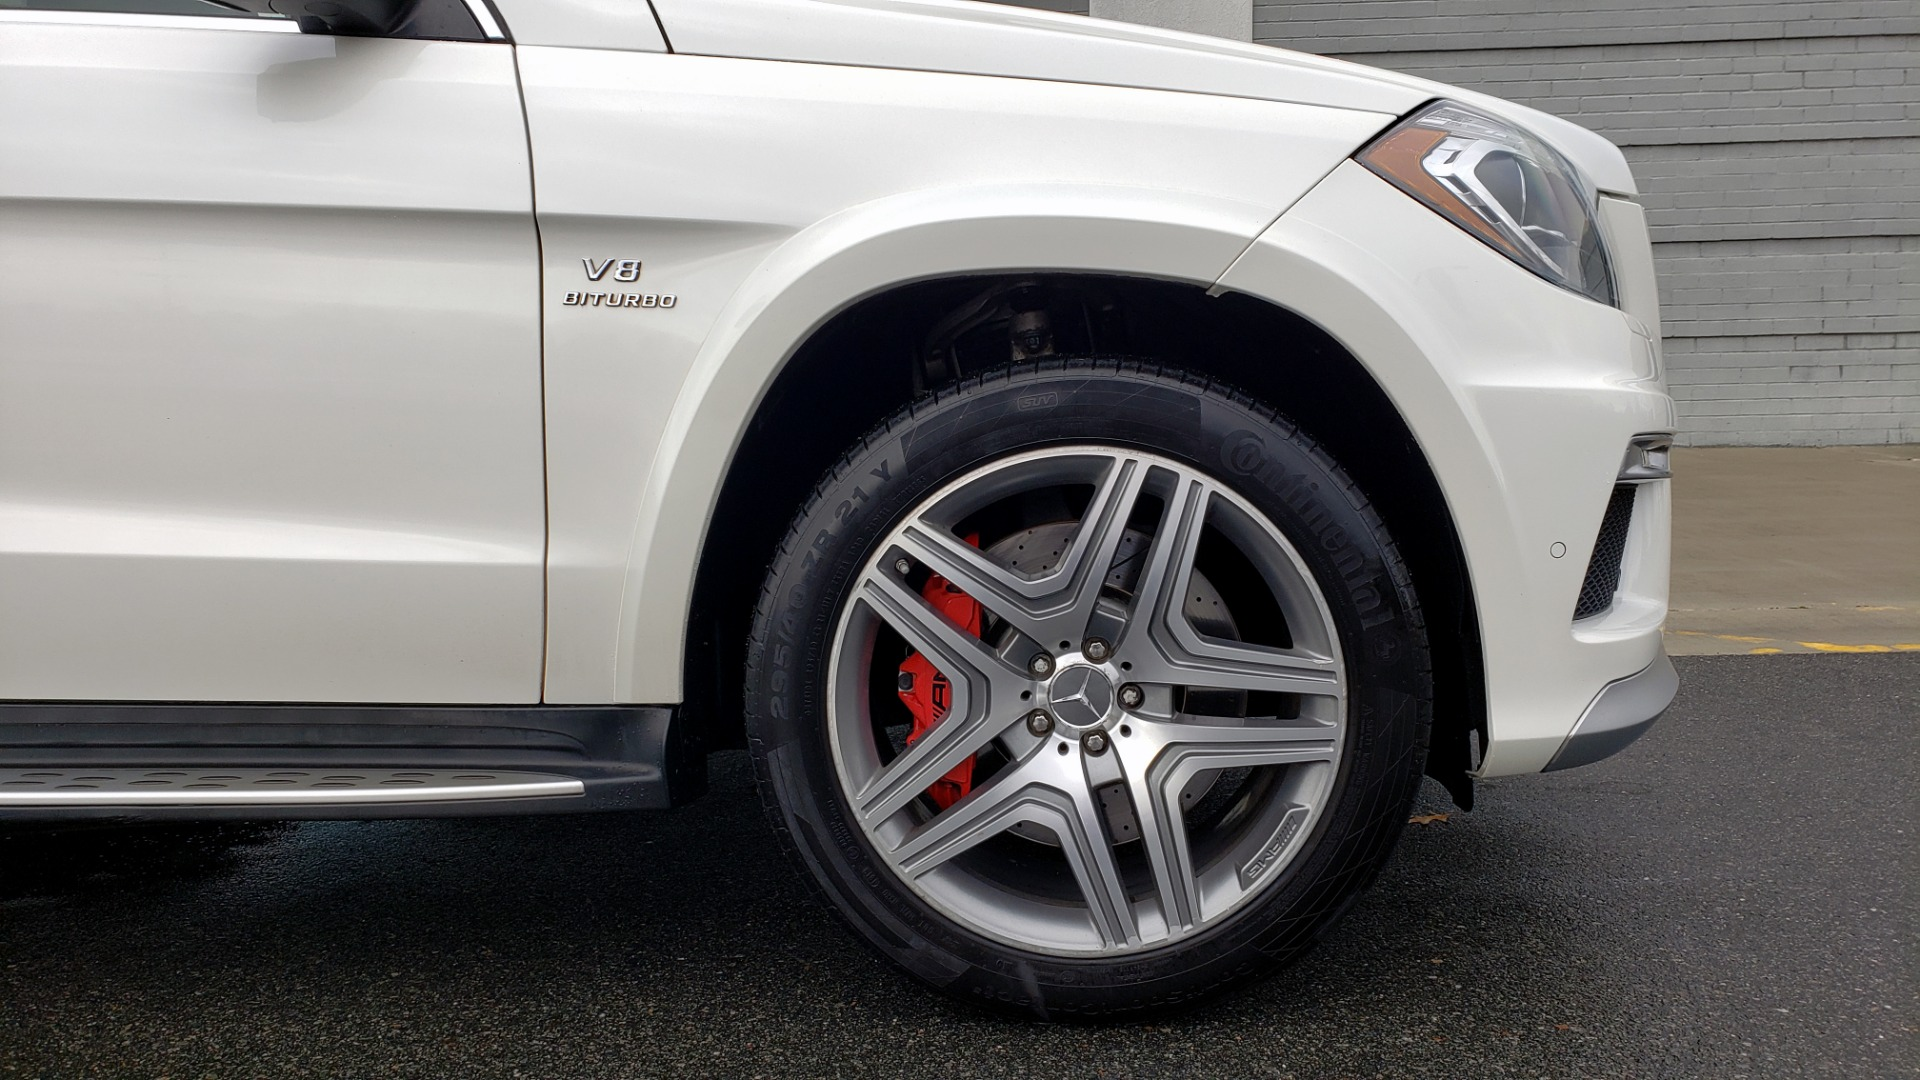 Used 2014 Mercedes-Benz GL-CLASS GL 63 AMG 4MATIC / NIGHT VIEW ASSIST PLUS / BANG & OLUFSEN SND for sale Sold at Formula Imports in Charlotte NC 28227 103